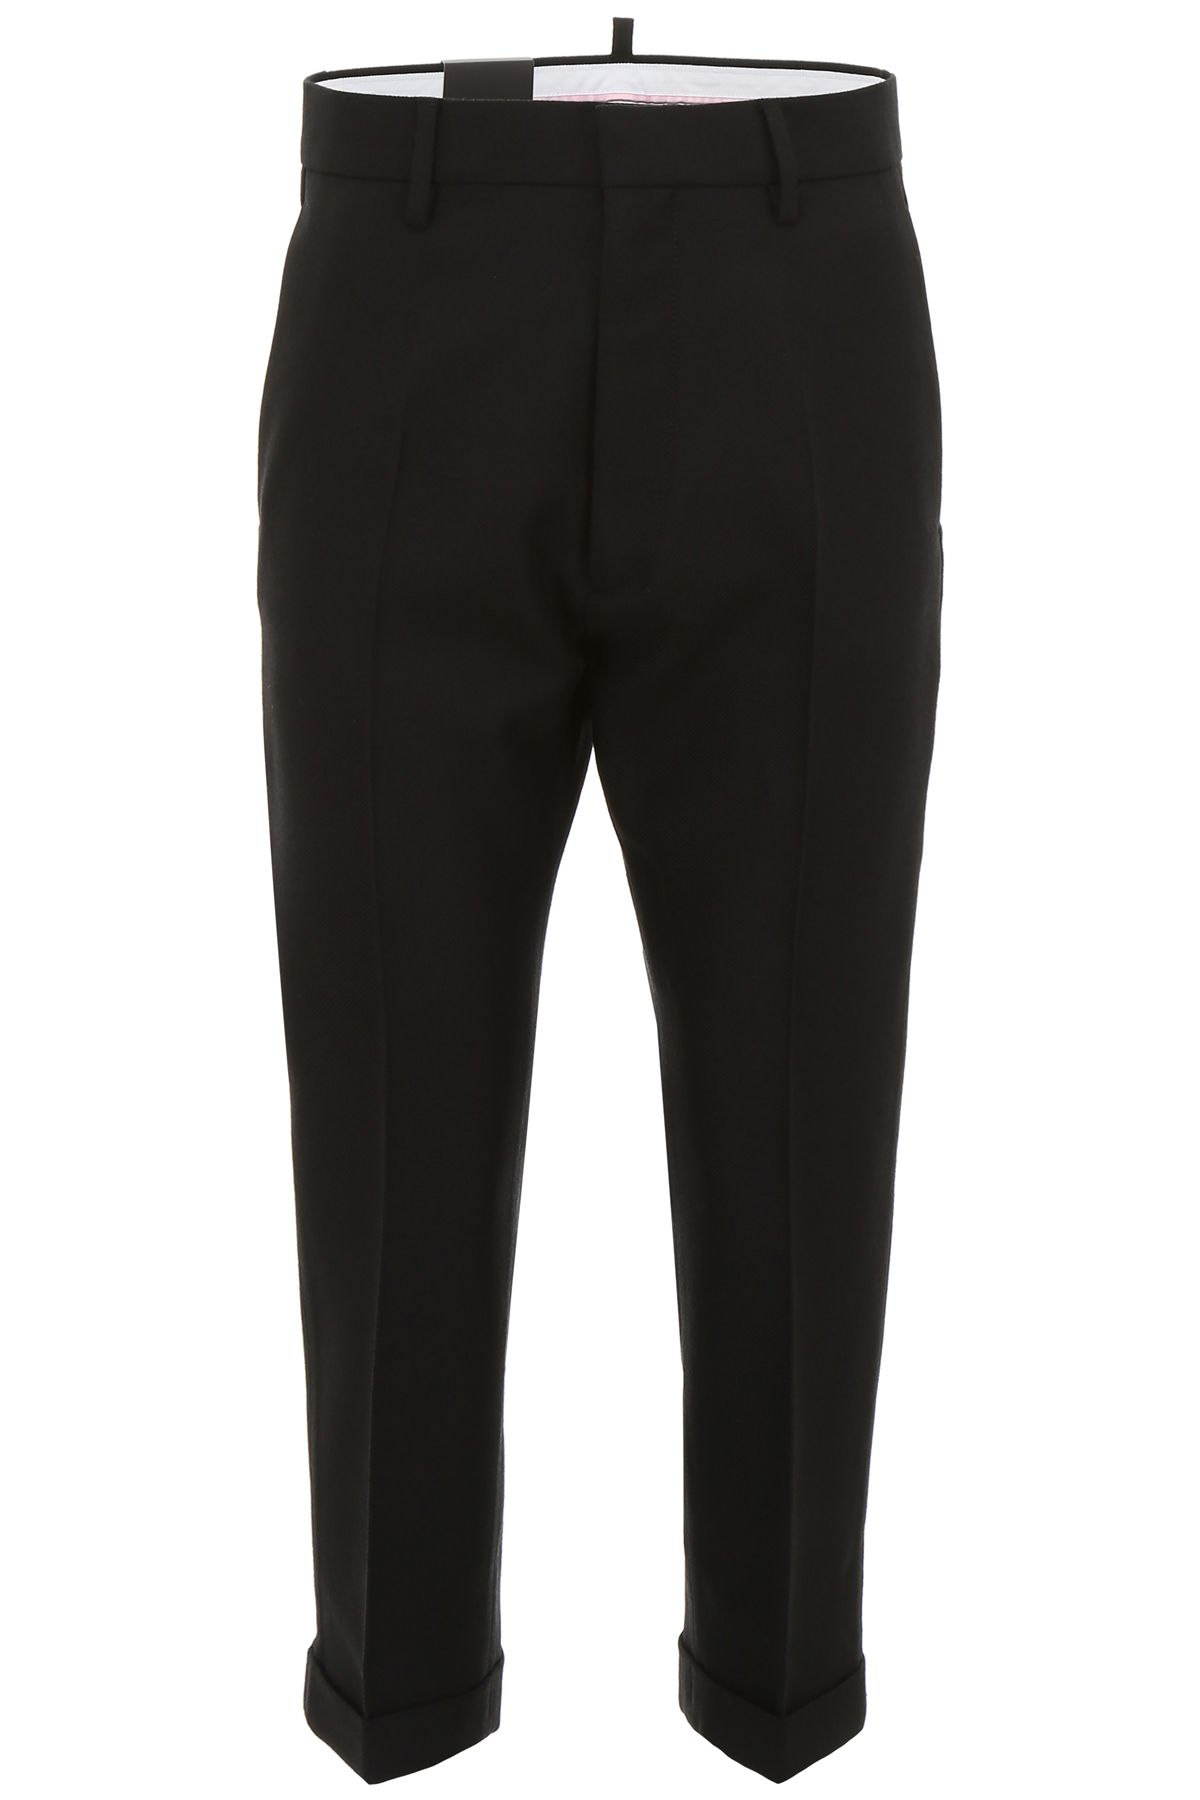 DSQUARED2 DENNYS TROUSERS